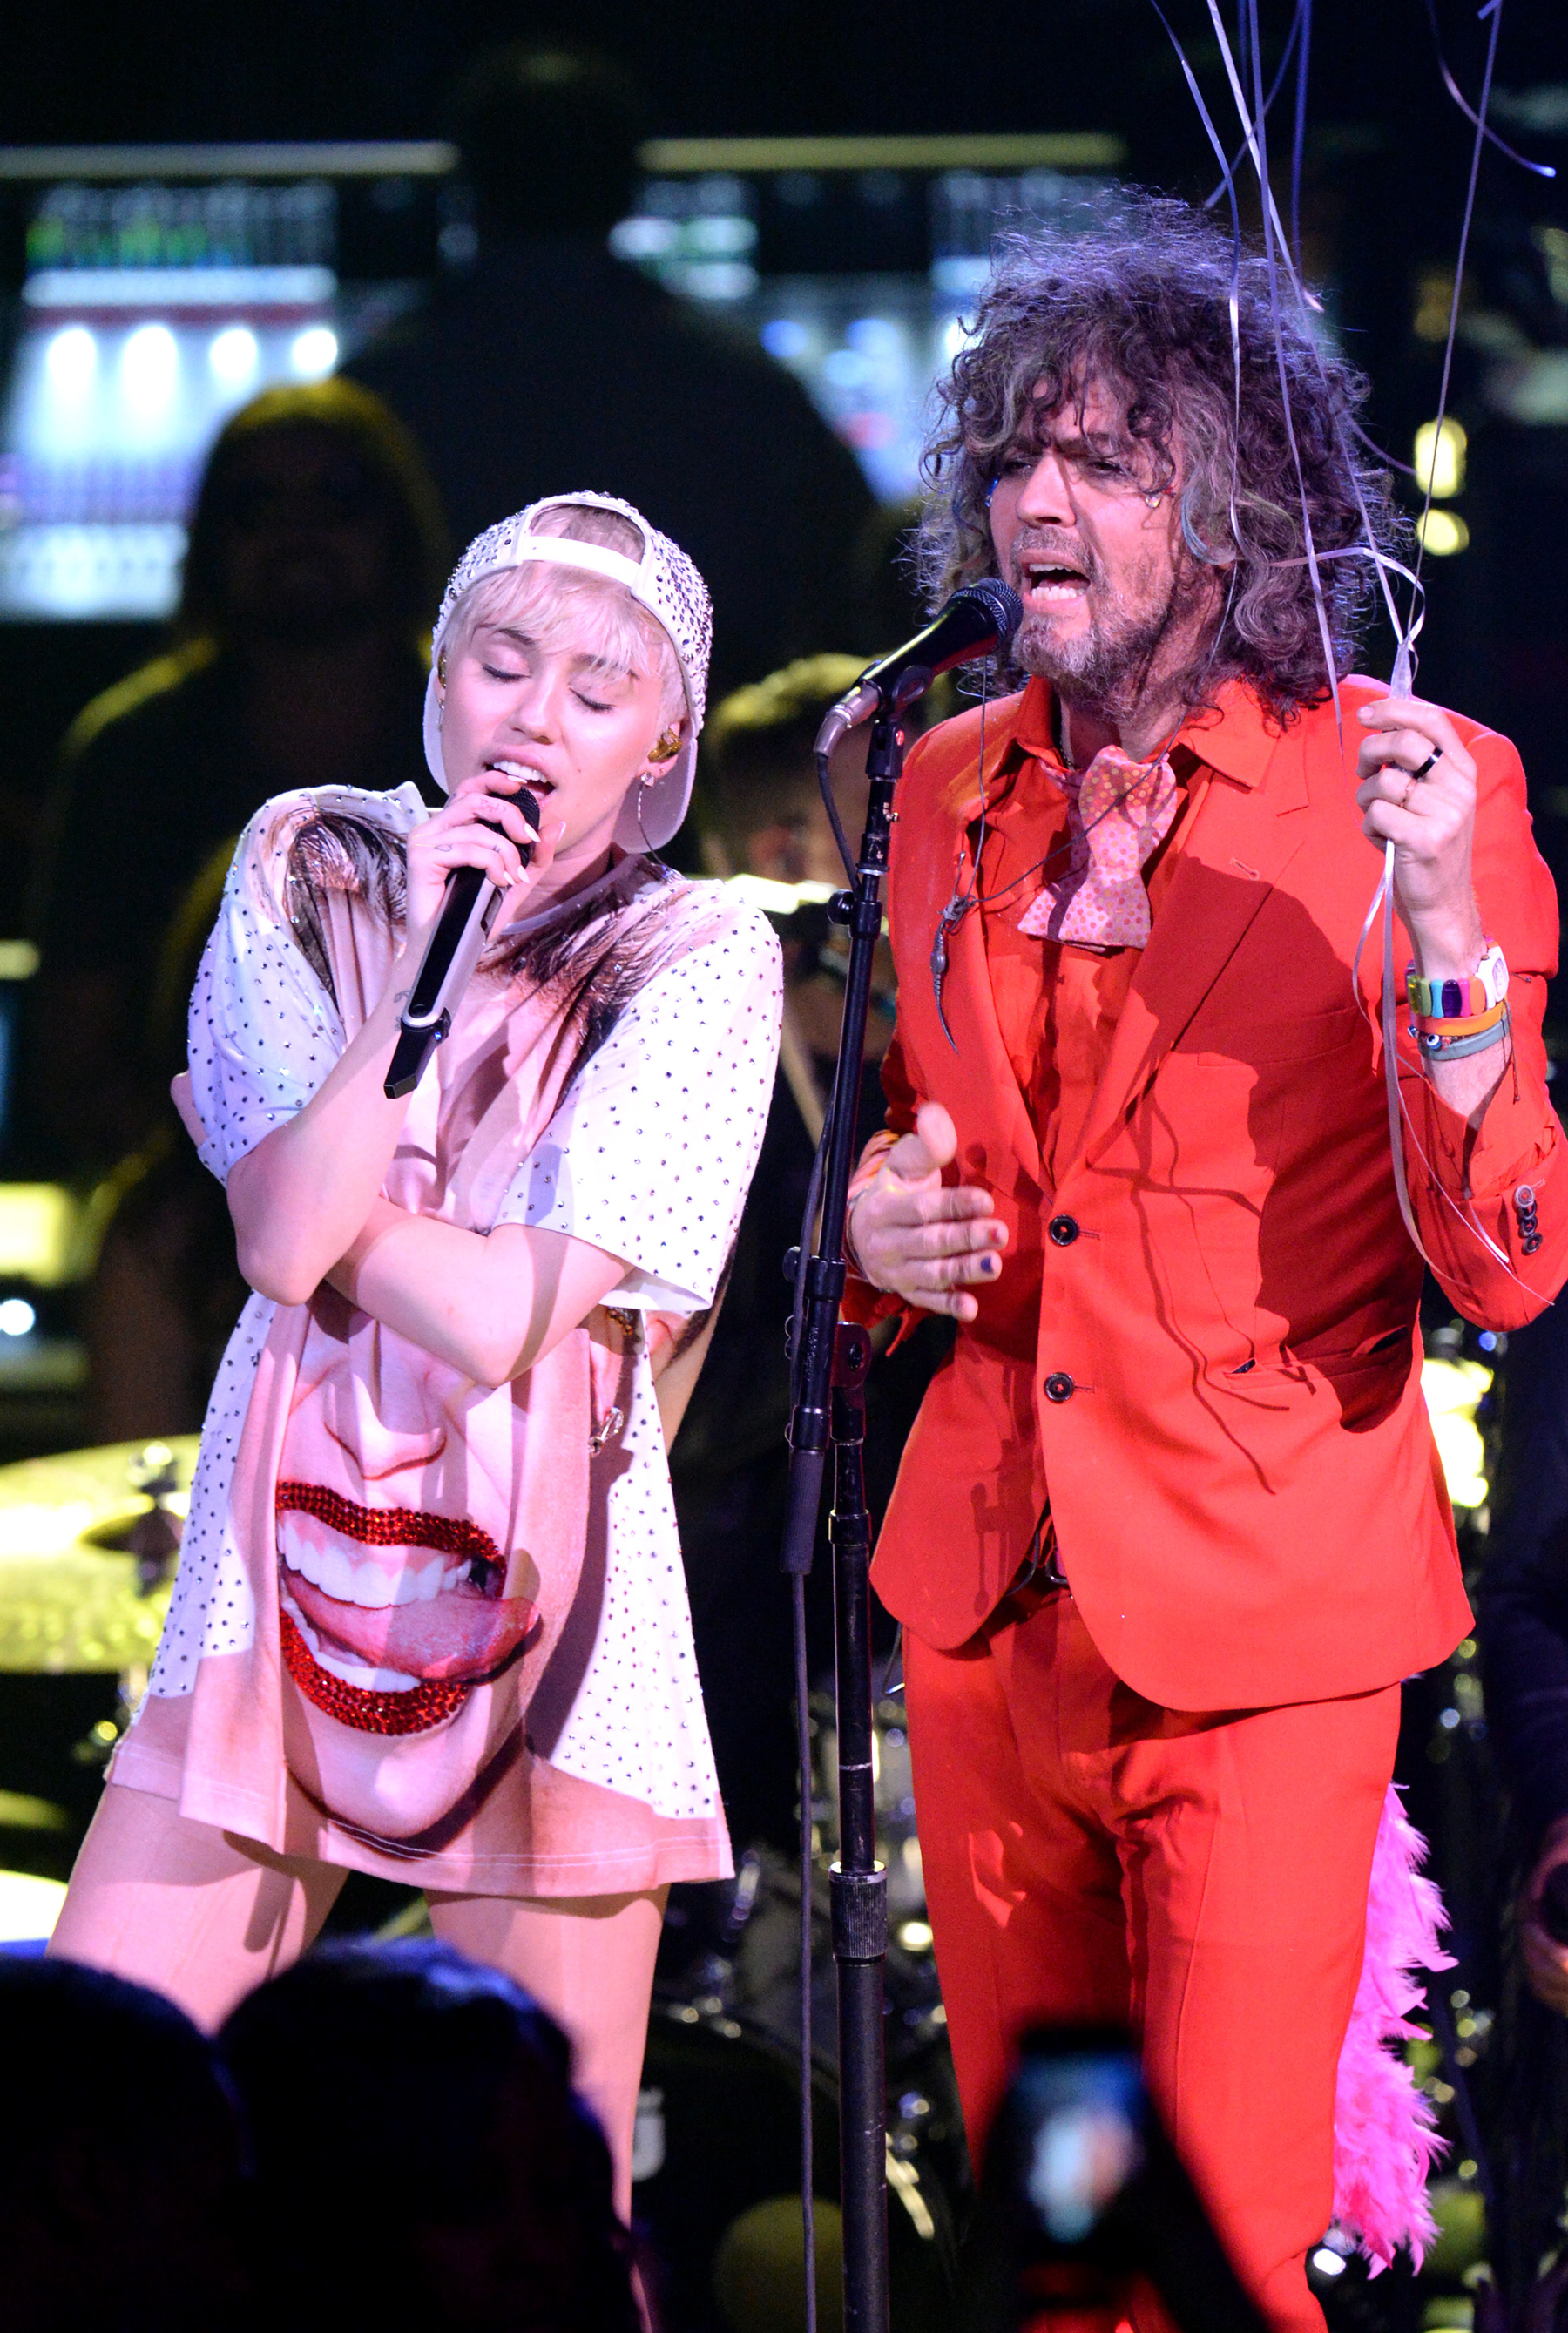 Miley Meets the Flaming Lips: Inside Their Unlikely Collaboration